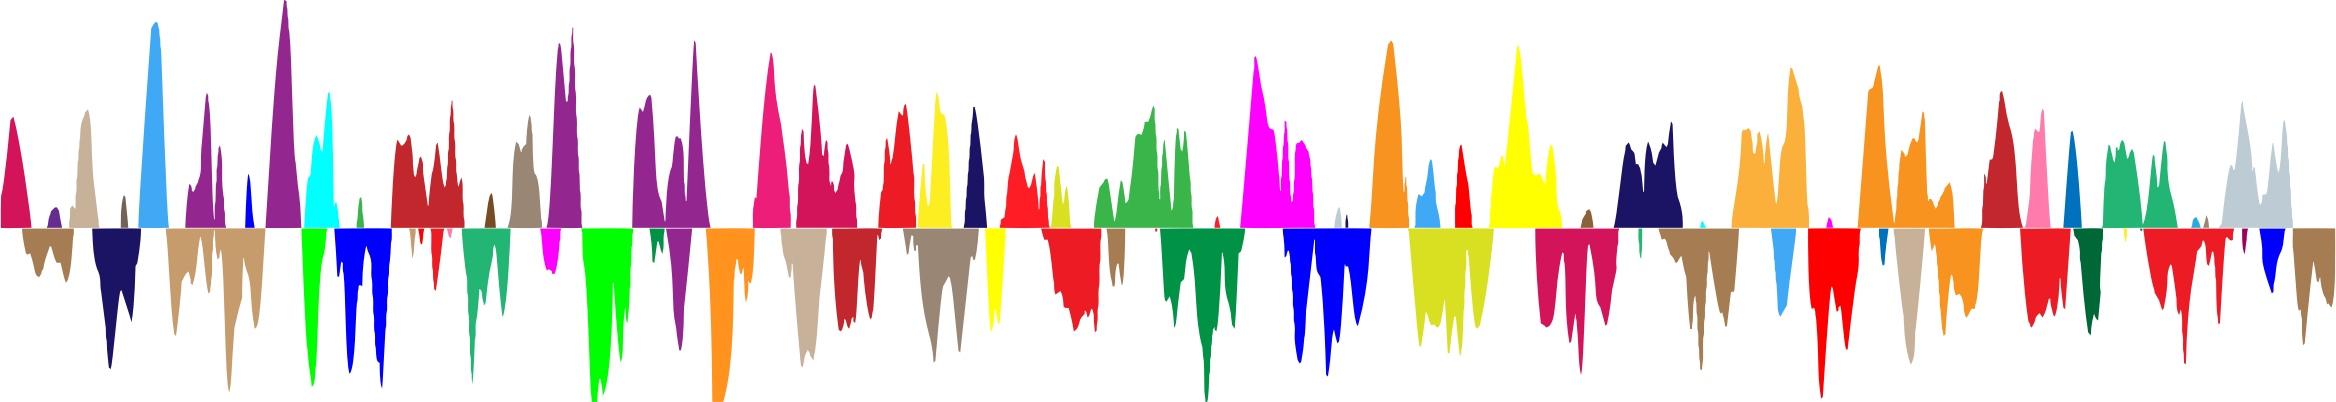 Waves clipart rainbow. Prismatic sound wave zoomed